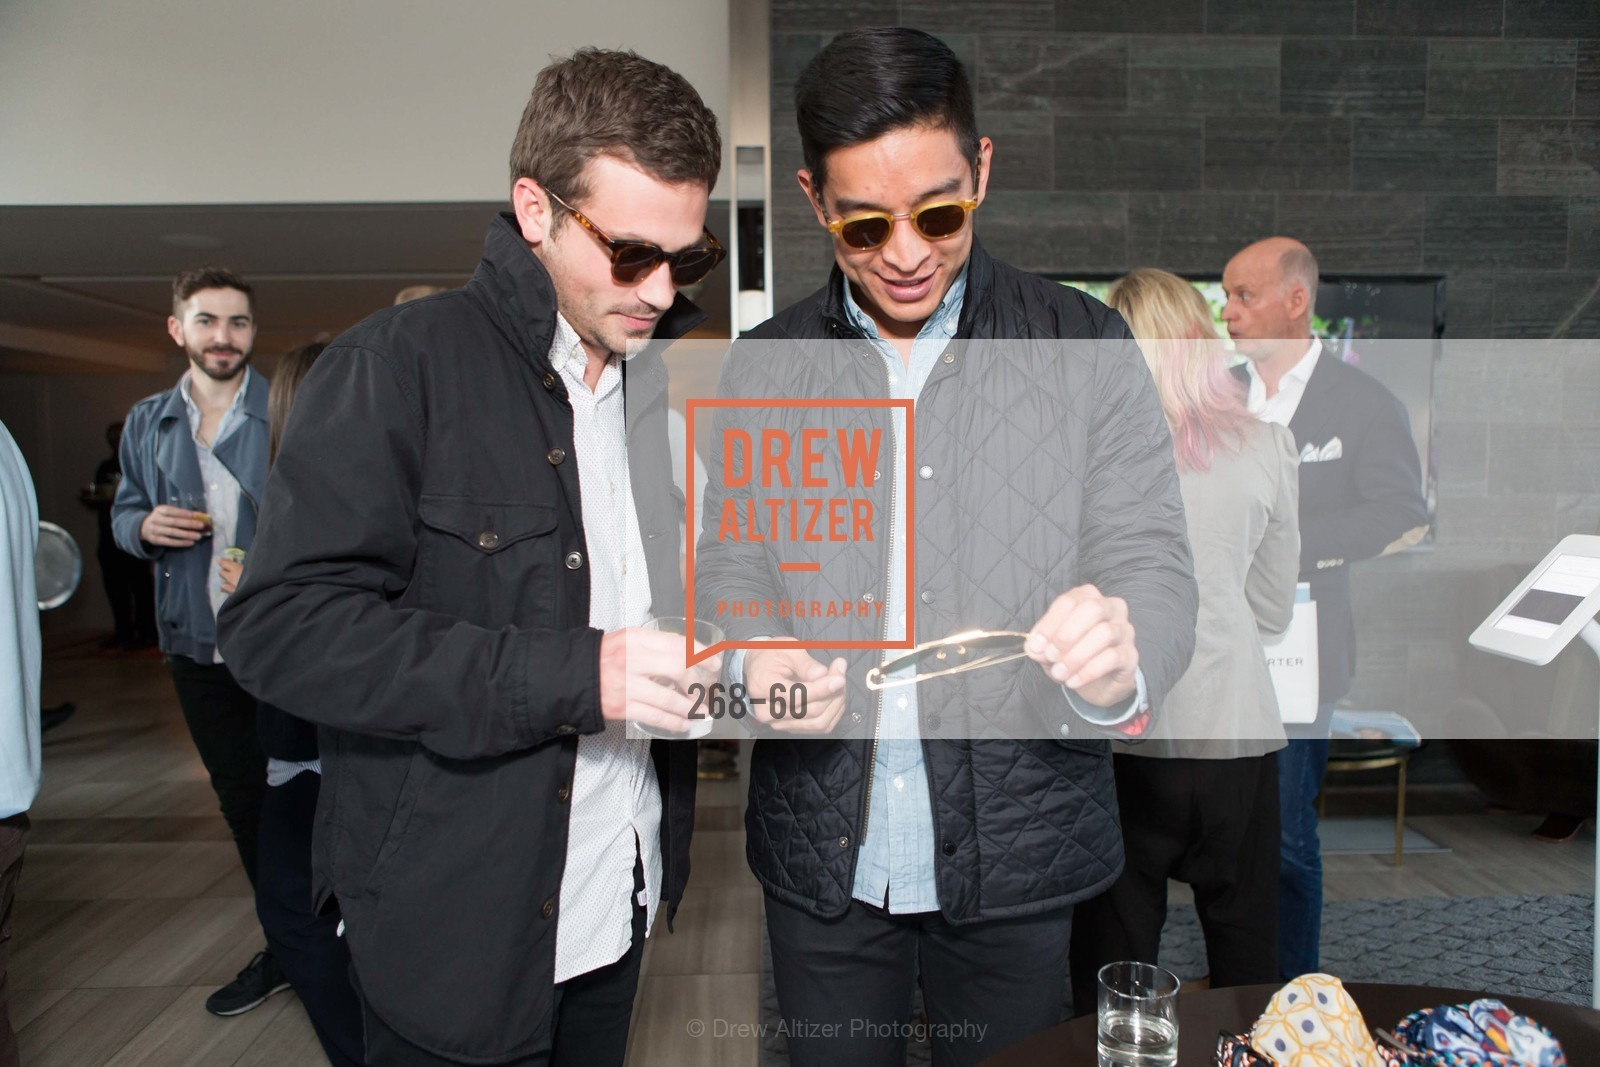 Jordan Bewtner, Alex Kim, MR PORTER Celebrate The San Francisco Issue of The Journal, The Battery Rooftop - The Battery SF, April 23rd, 2015,Drew Altizer, Drew Altizer Photography, full-service event agency, private events, San Francisco photographer, photographer California